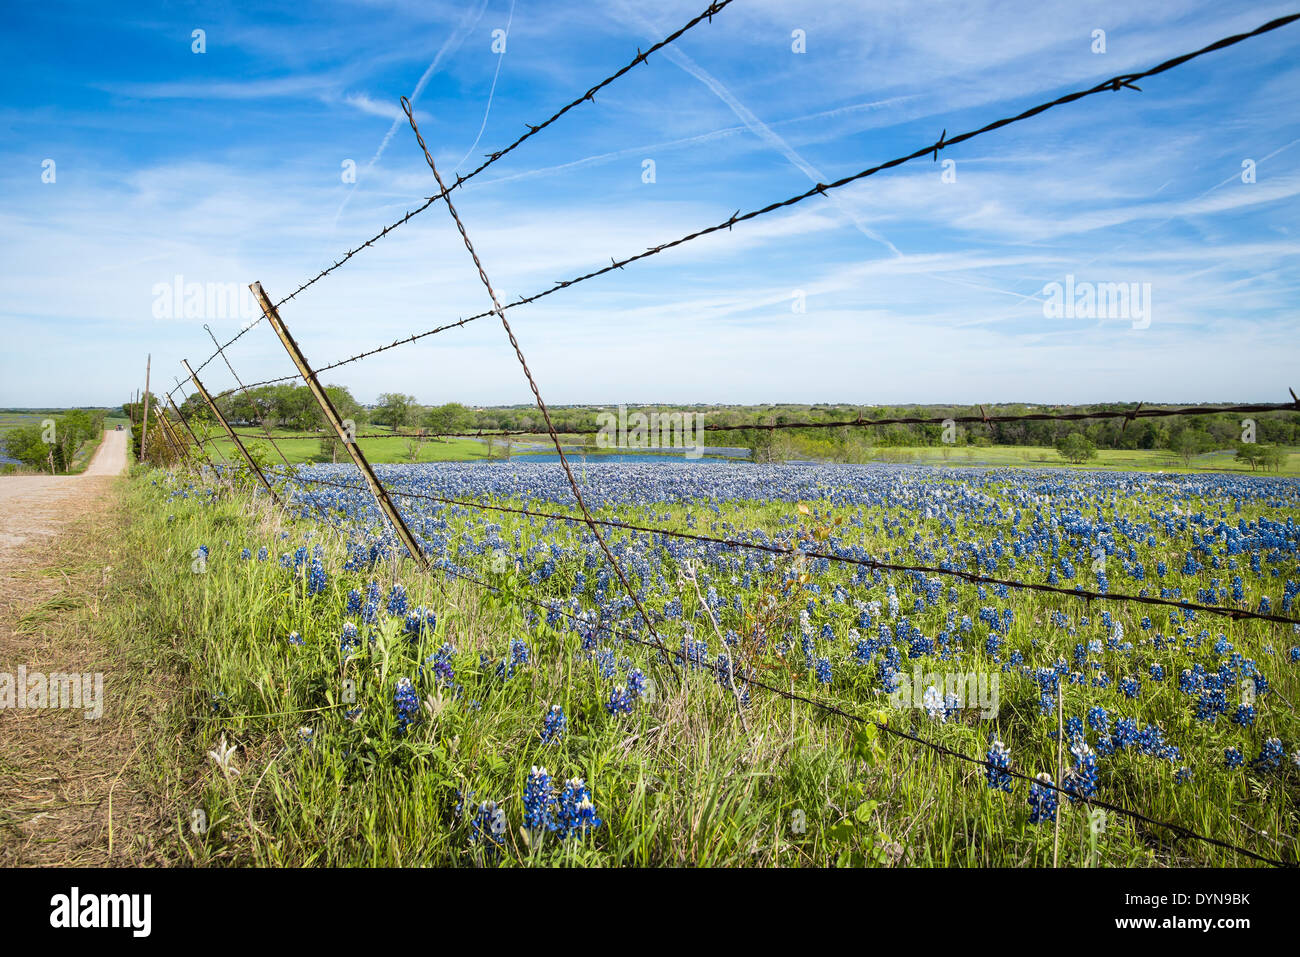 Bluebonnet field and fence along a country road in Texas spring - Stock Image